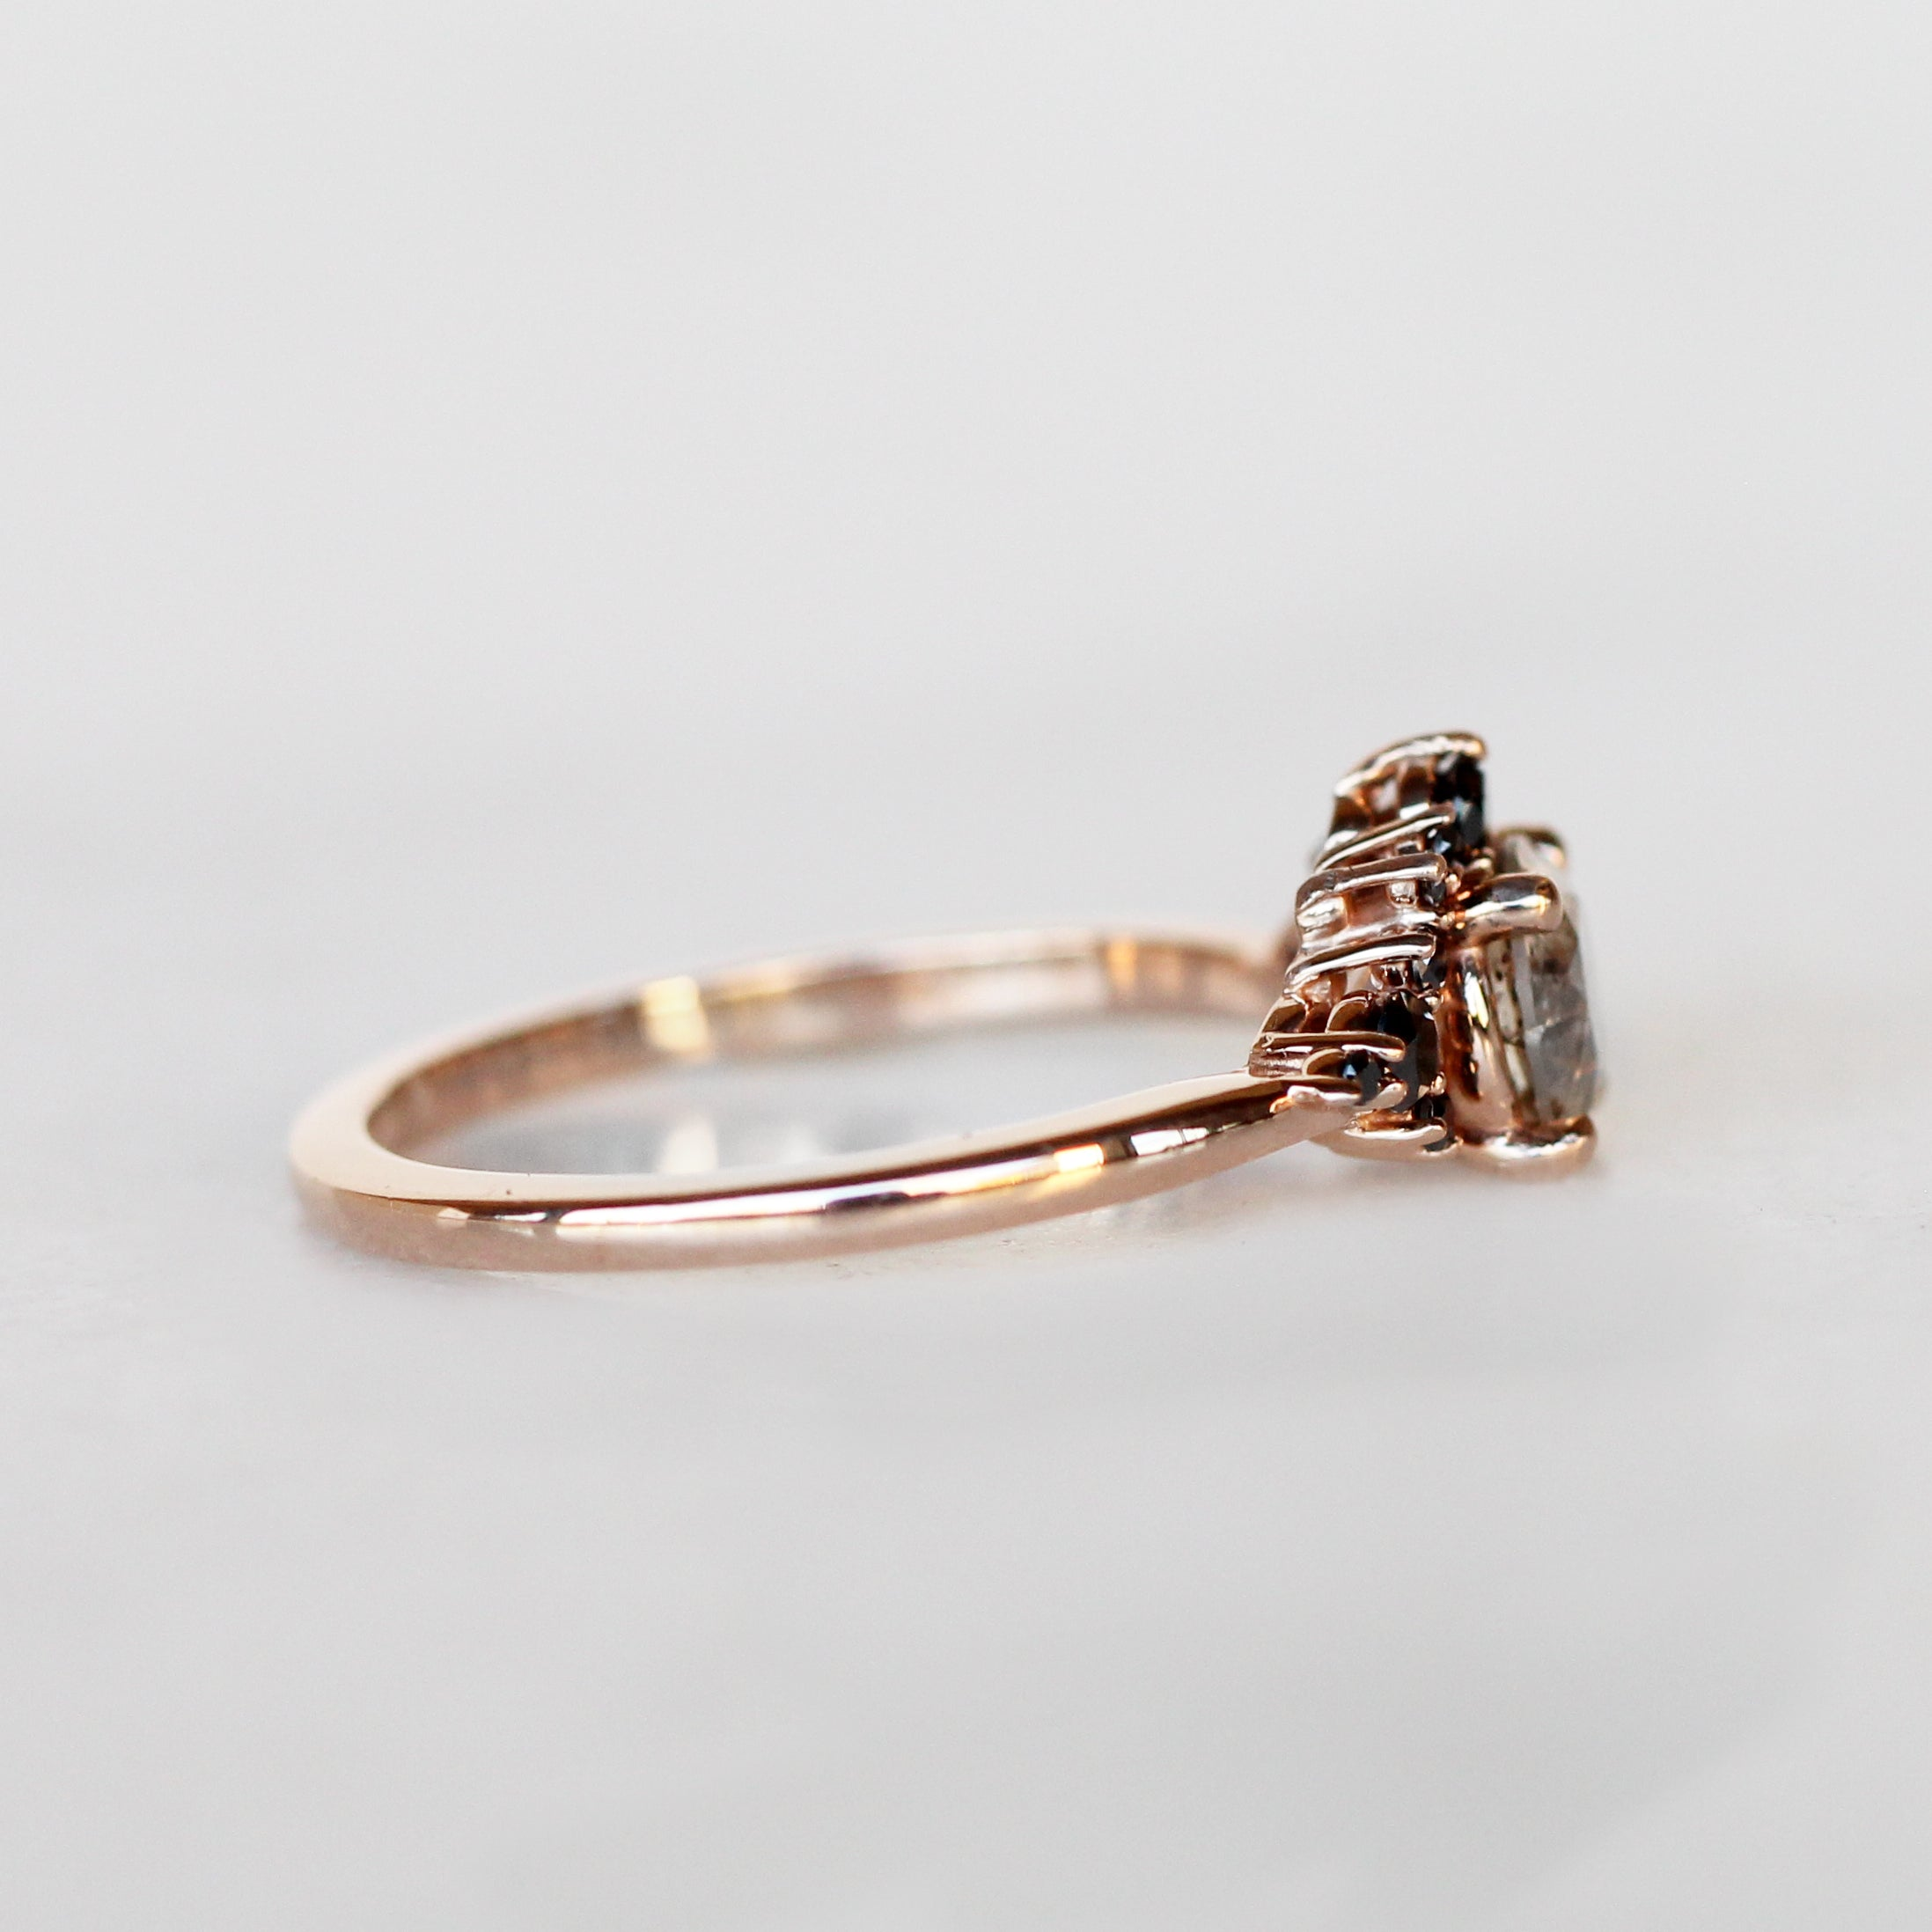 Athena Ring with a .60 ct Celestial Diamond and Black Accent Diamonds in 10k Rose Gold - Ready to Size and Ship - Celestial Diamonds ® by Midwinter Co.